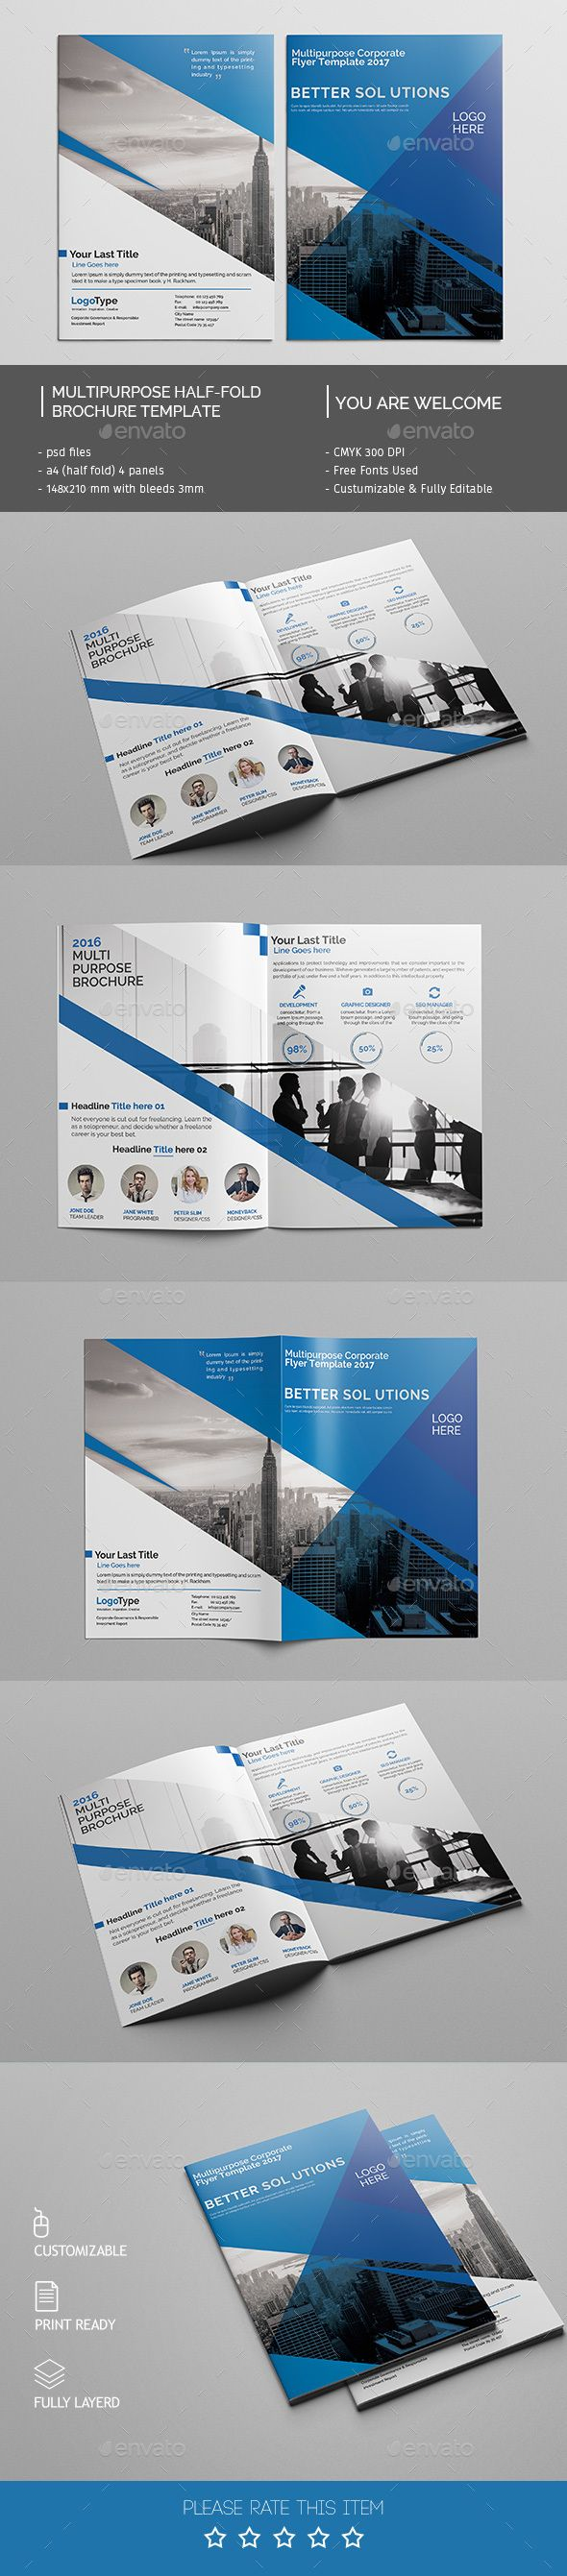 Corporate Bi-fold Brochure Template PSD. Download here: http://graphicriver.net/item/corporate-bifold-brochure-template-02/14634259?ref=ksioks